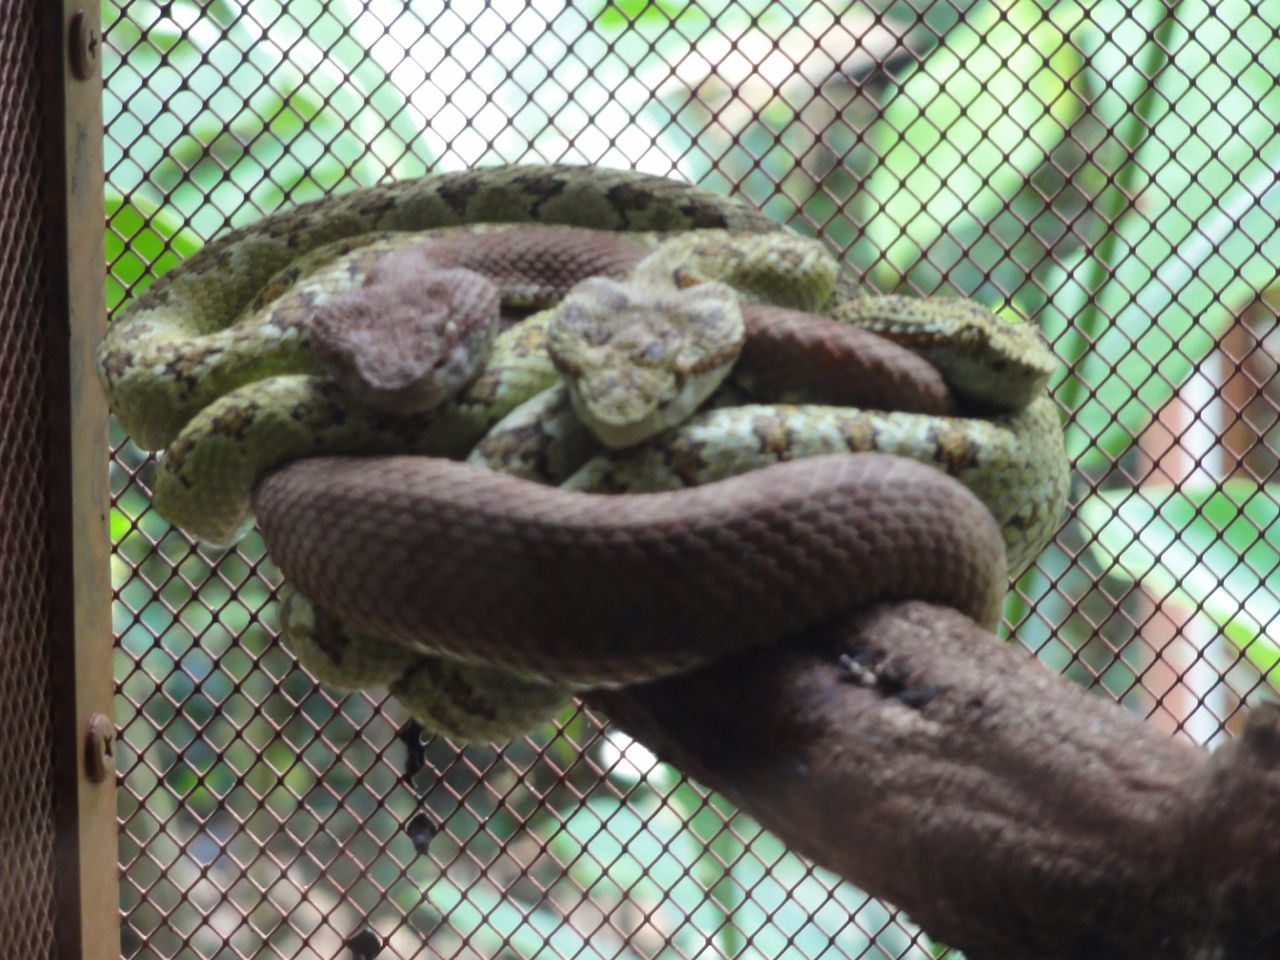 Jaguar Rescue Center - 3 snakes